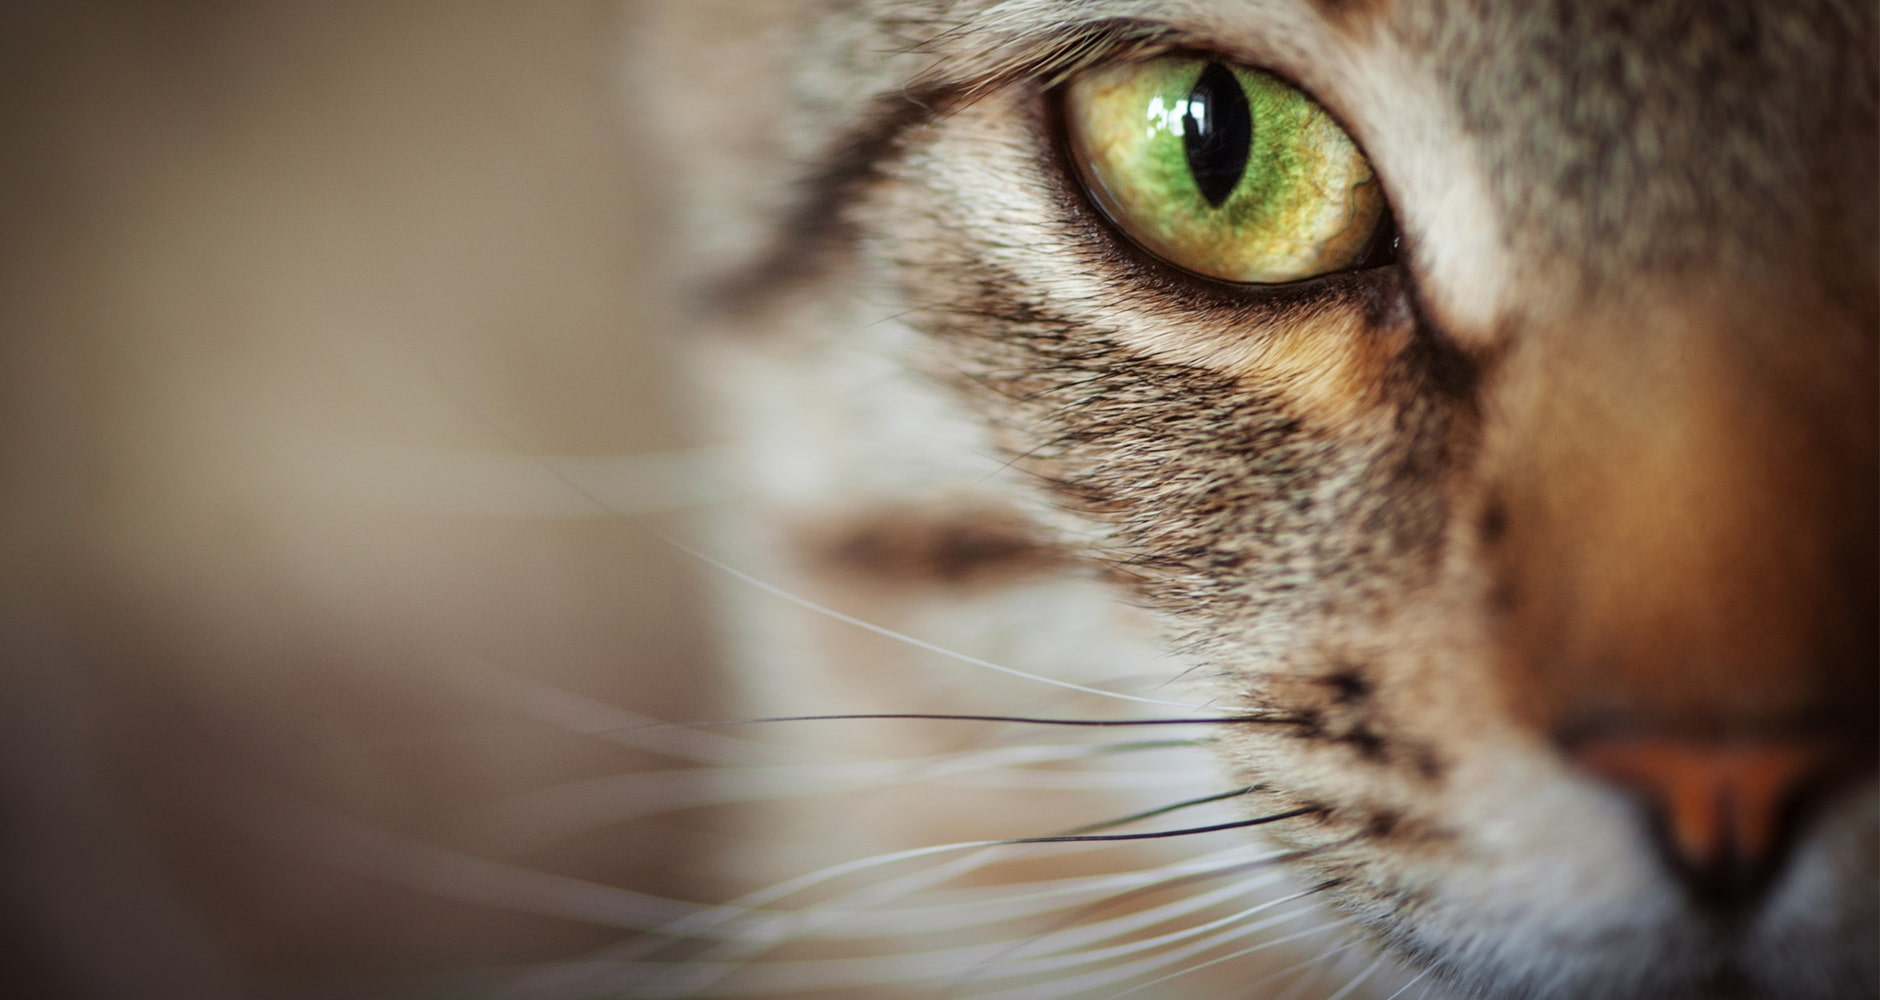 10 Unusual Facts About Cats You Didn't Knowimage preview